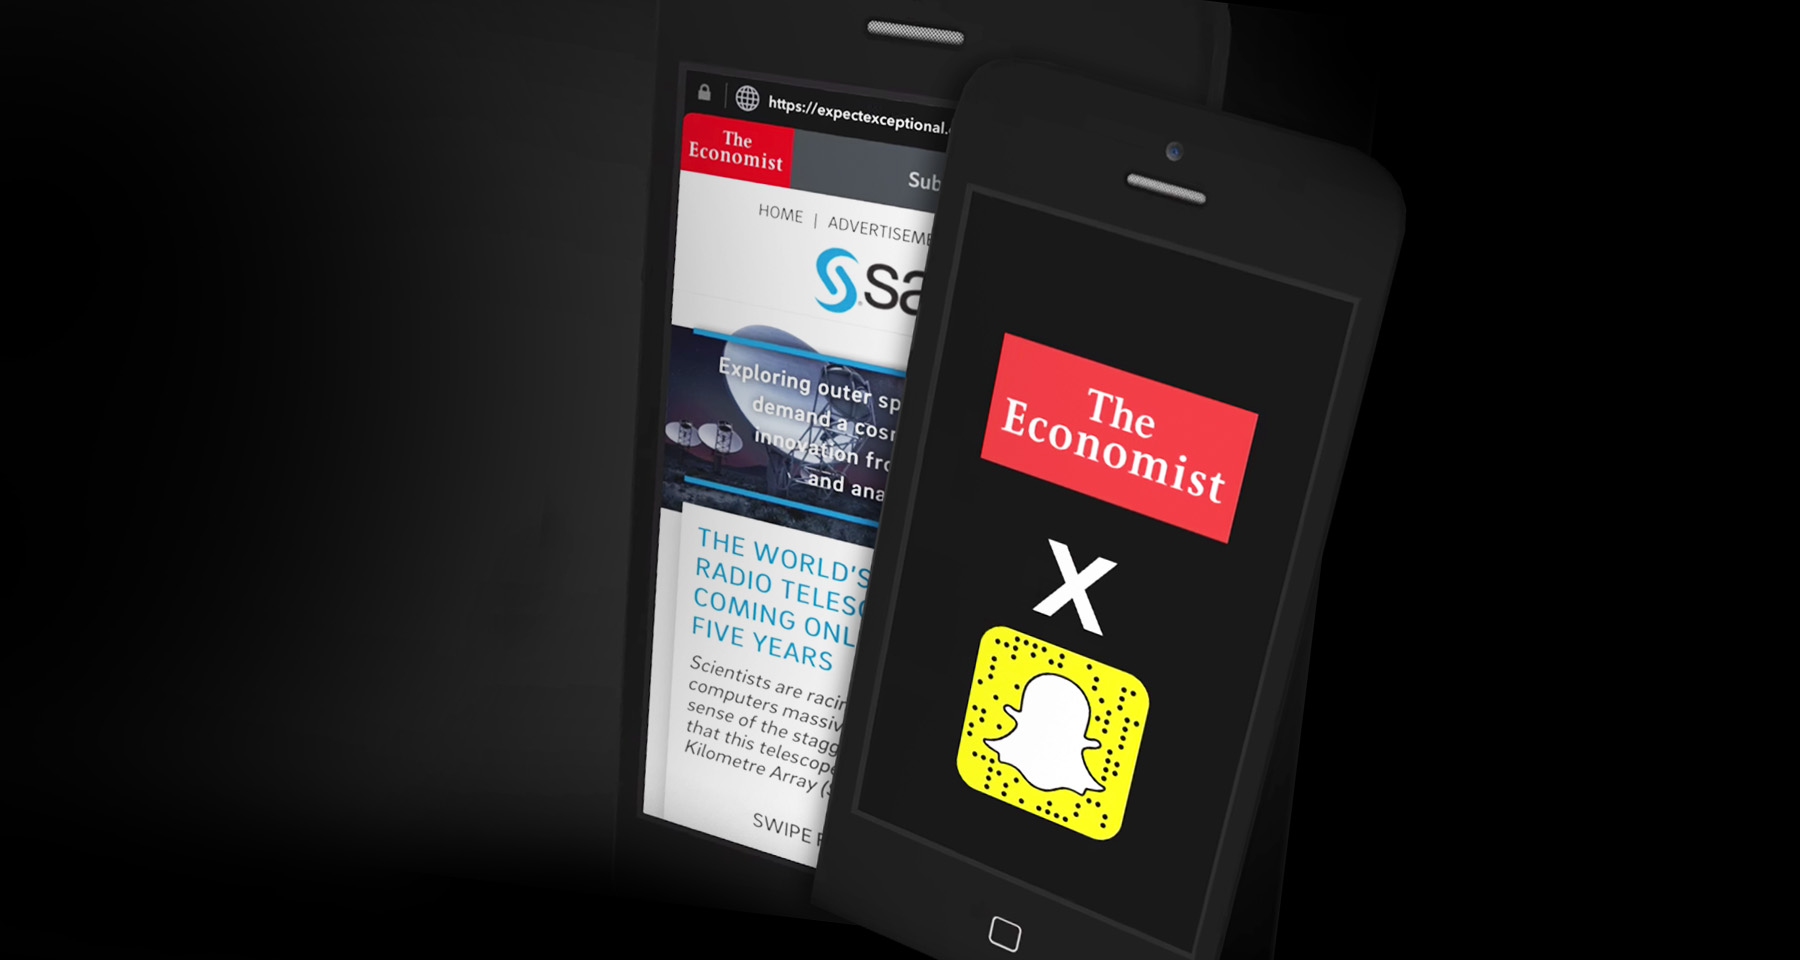 How Economist's embrace of Snapchat breathed new life into the brand